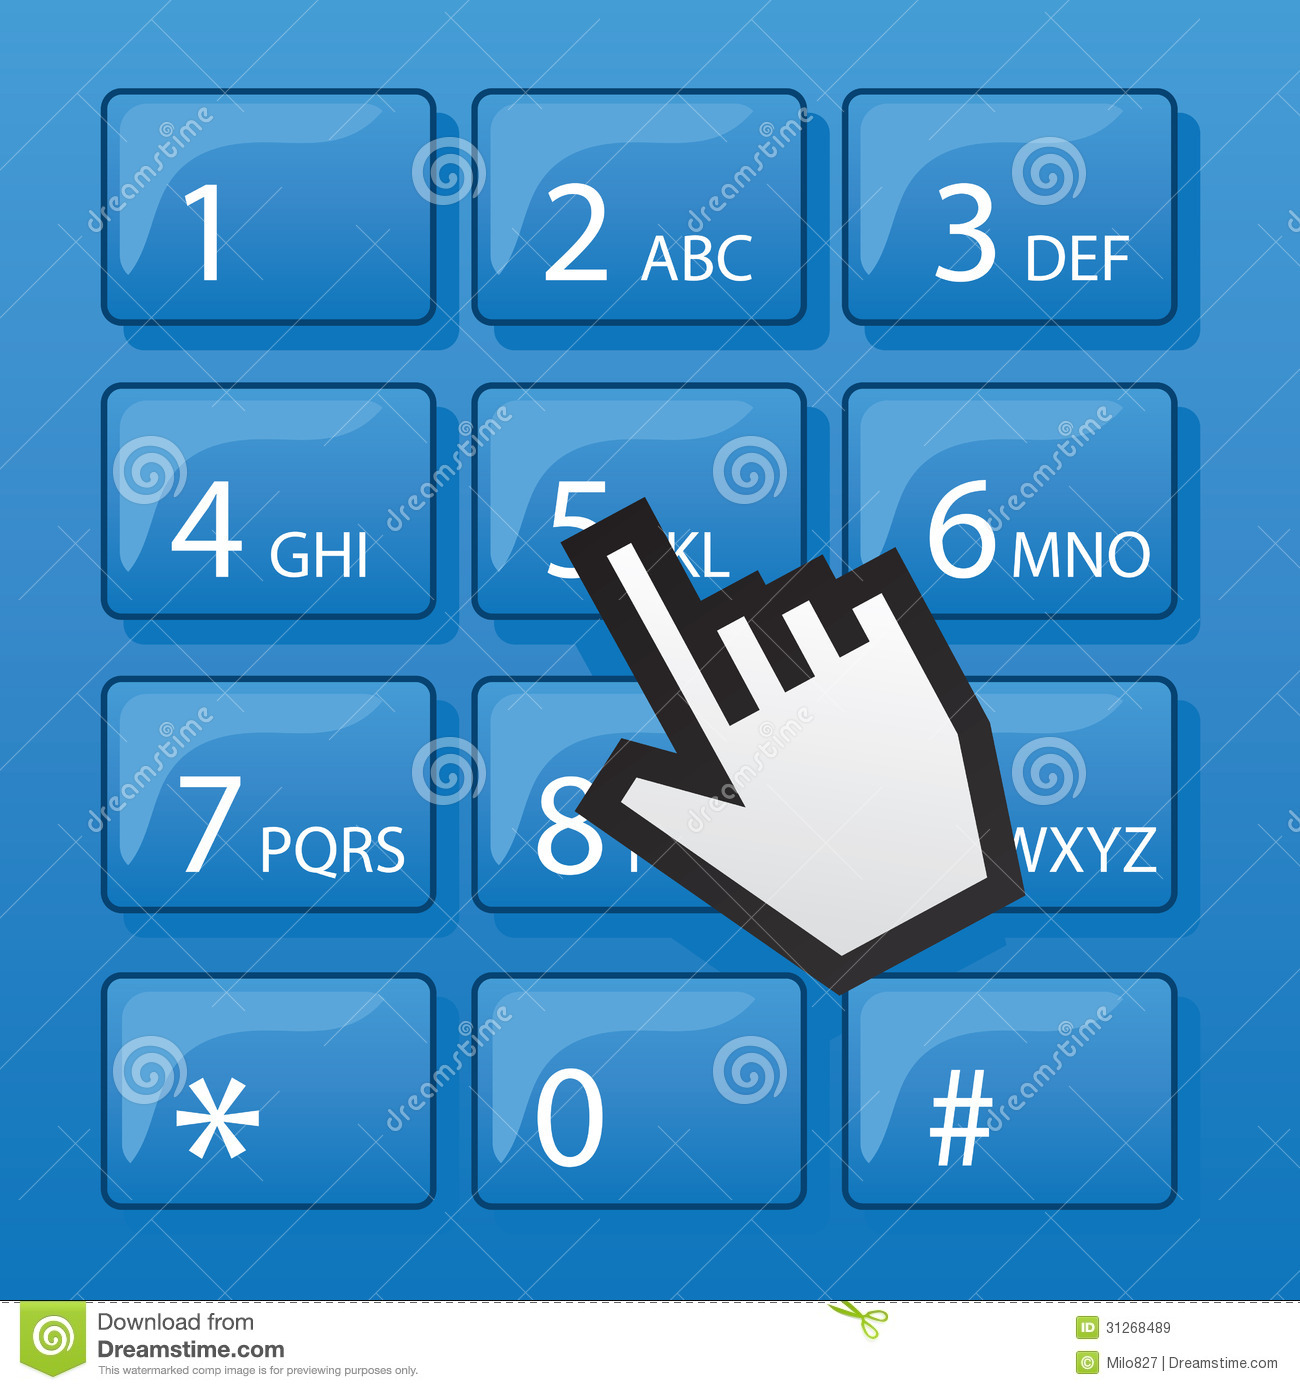 Phone Dial Pad Pointer Royalty Free Stock Images - Image: 31268489